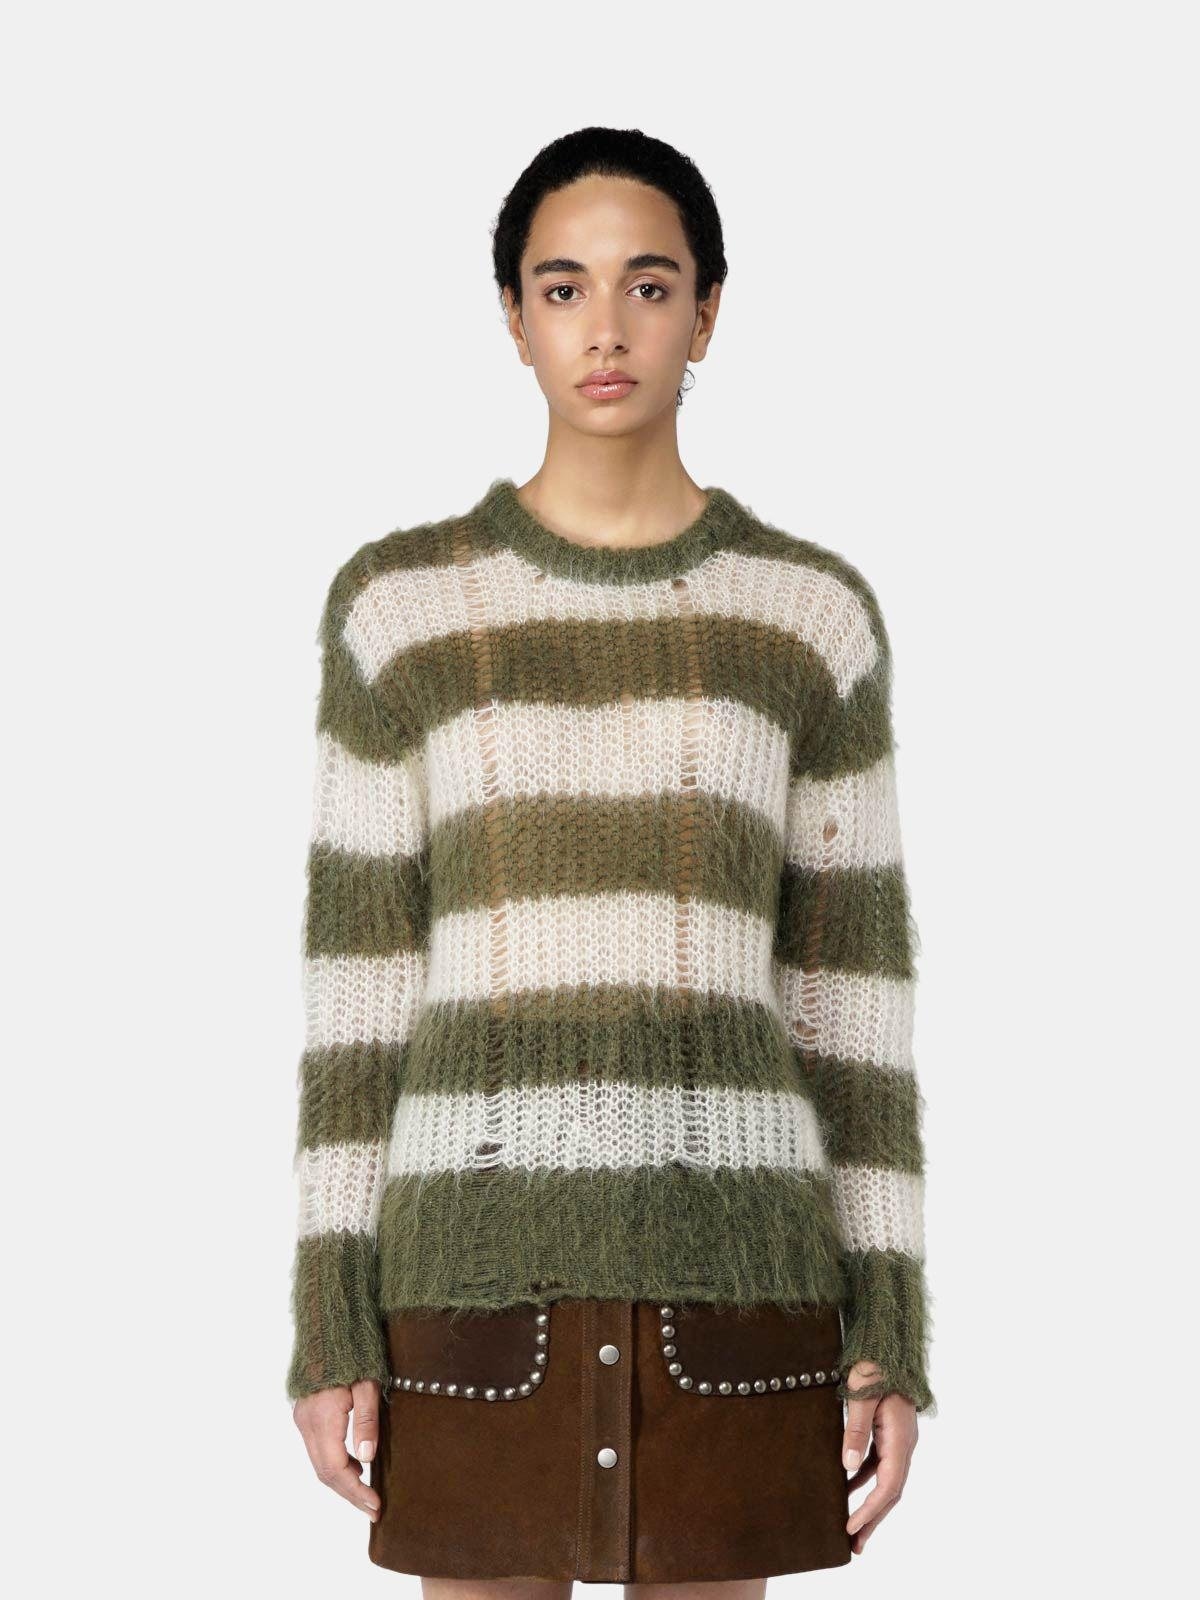 Green and white striped Antonica pullover in mohair wool